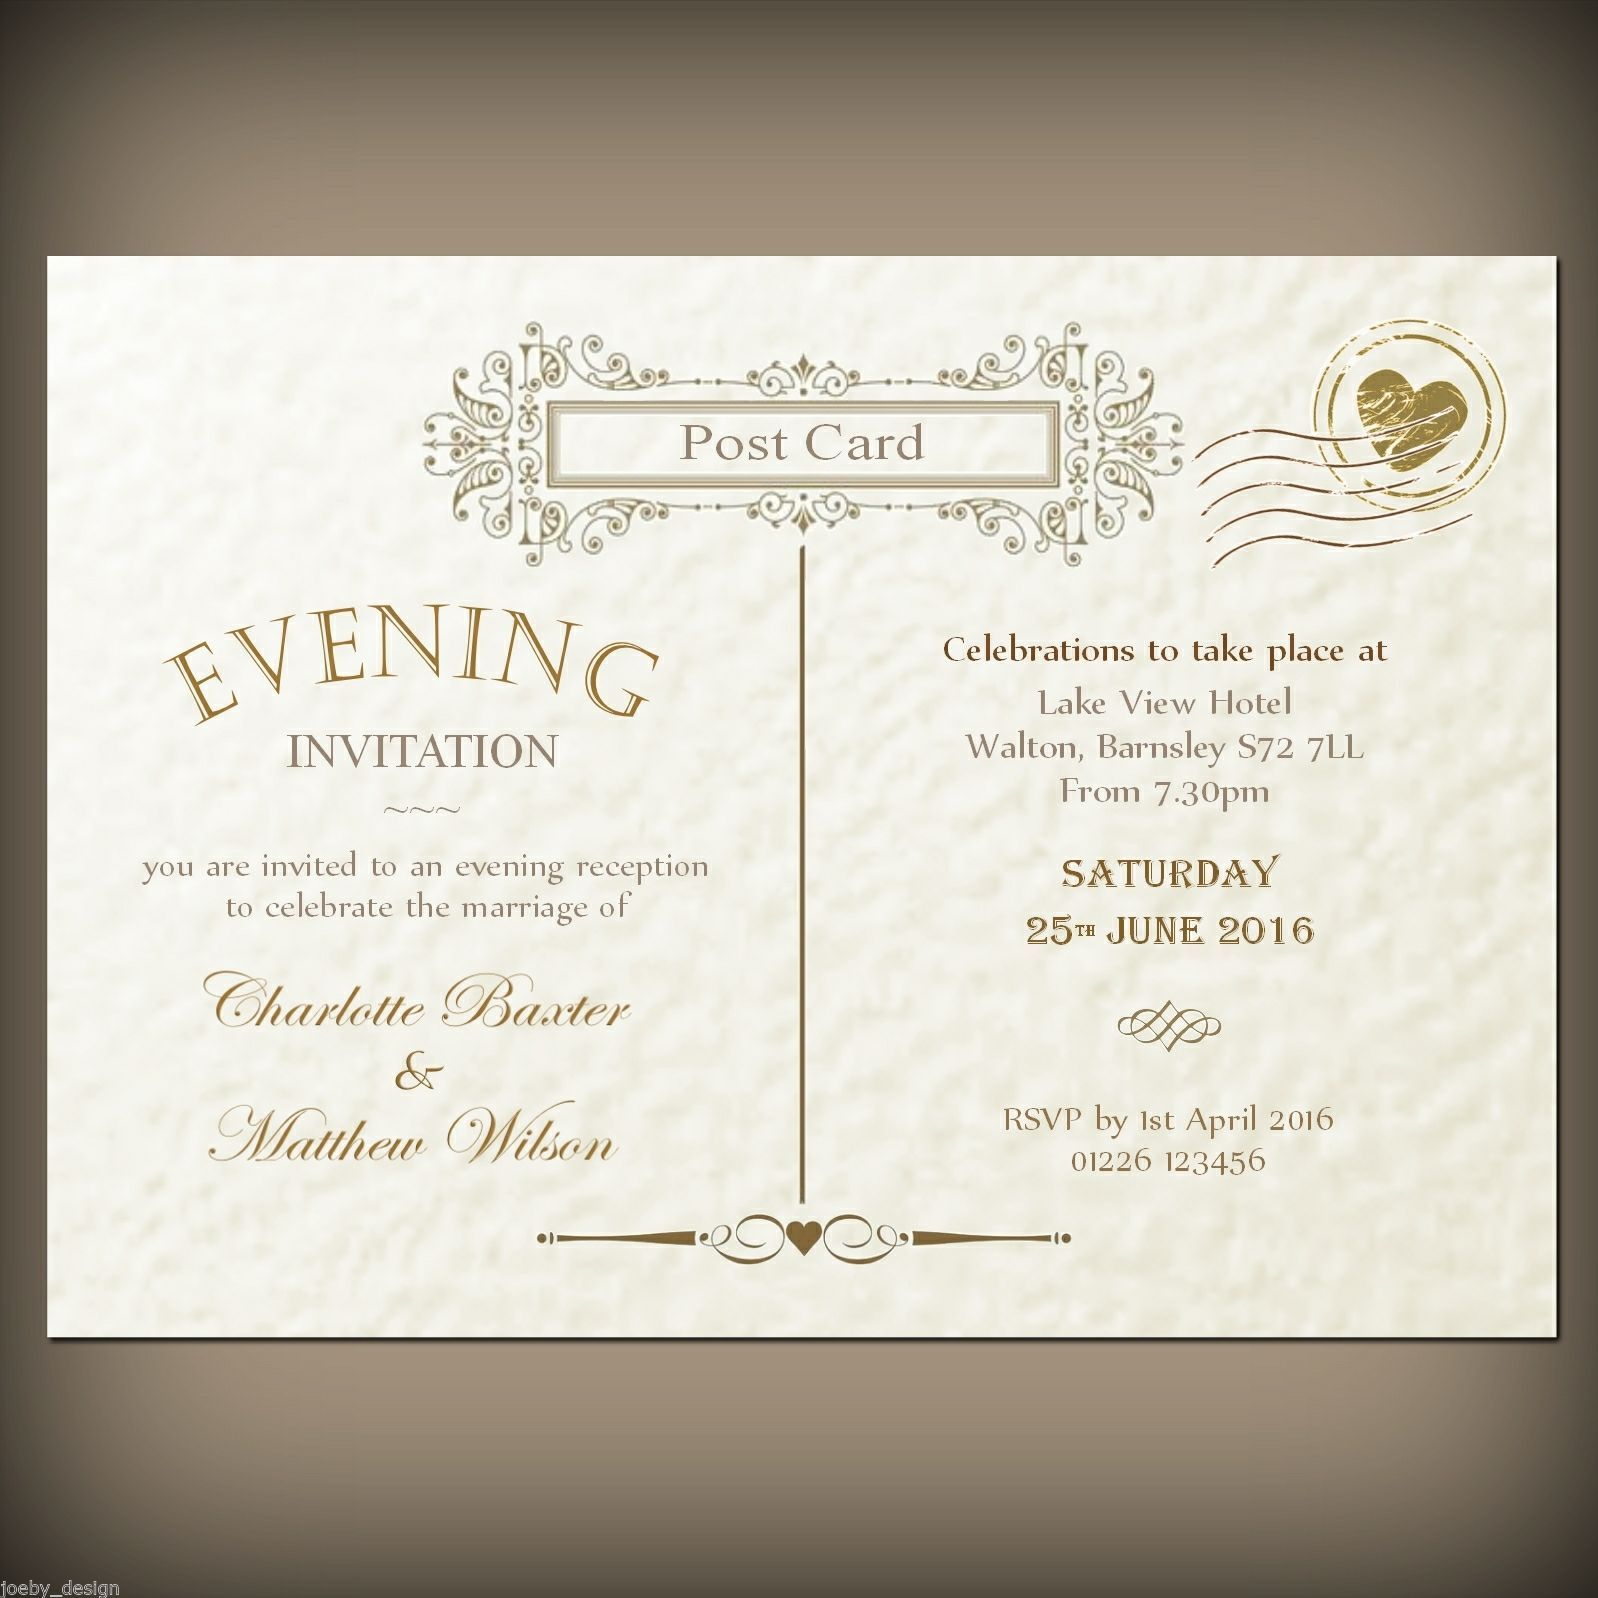 Details about Personalised wedding / evening invitations & envelopes ...